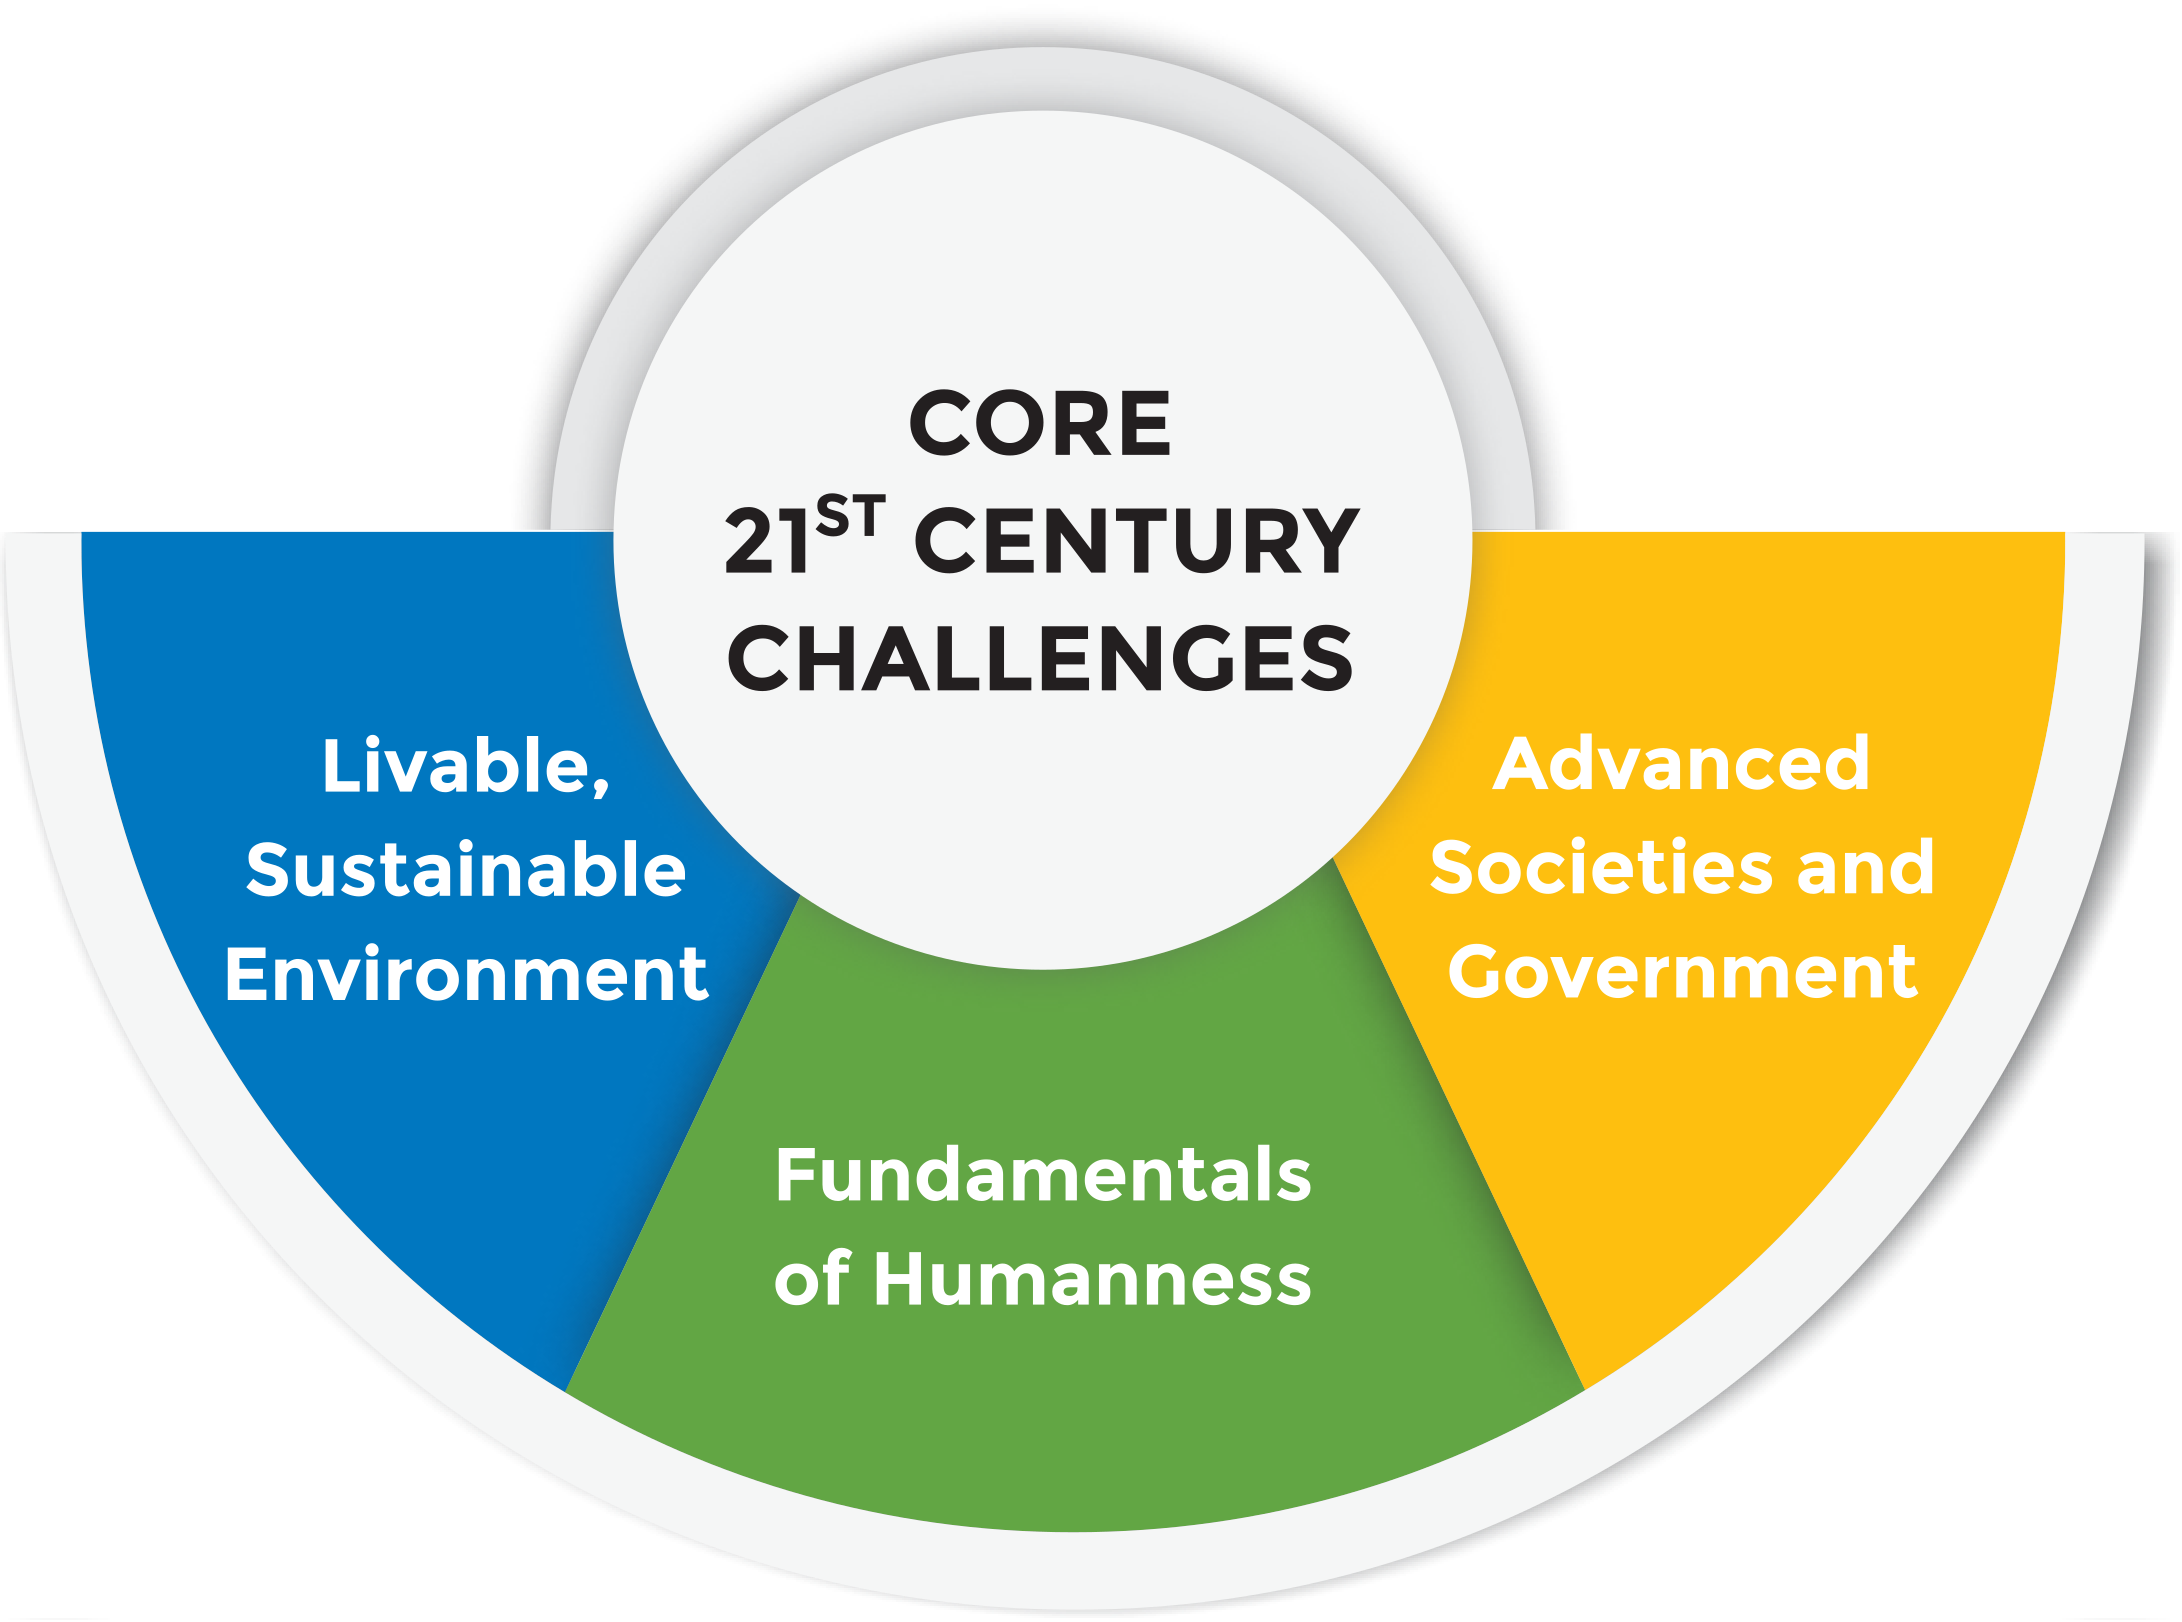 Core21stCenturyChallenges.png